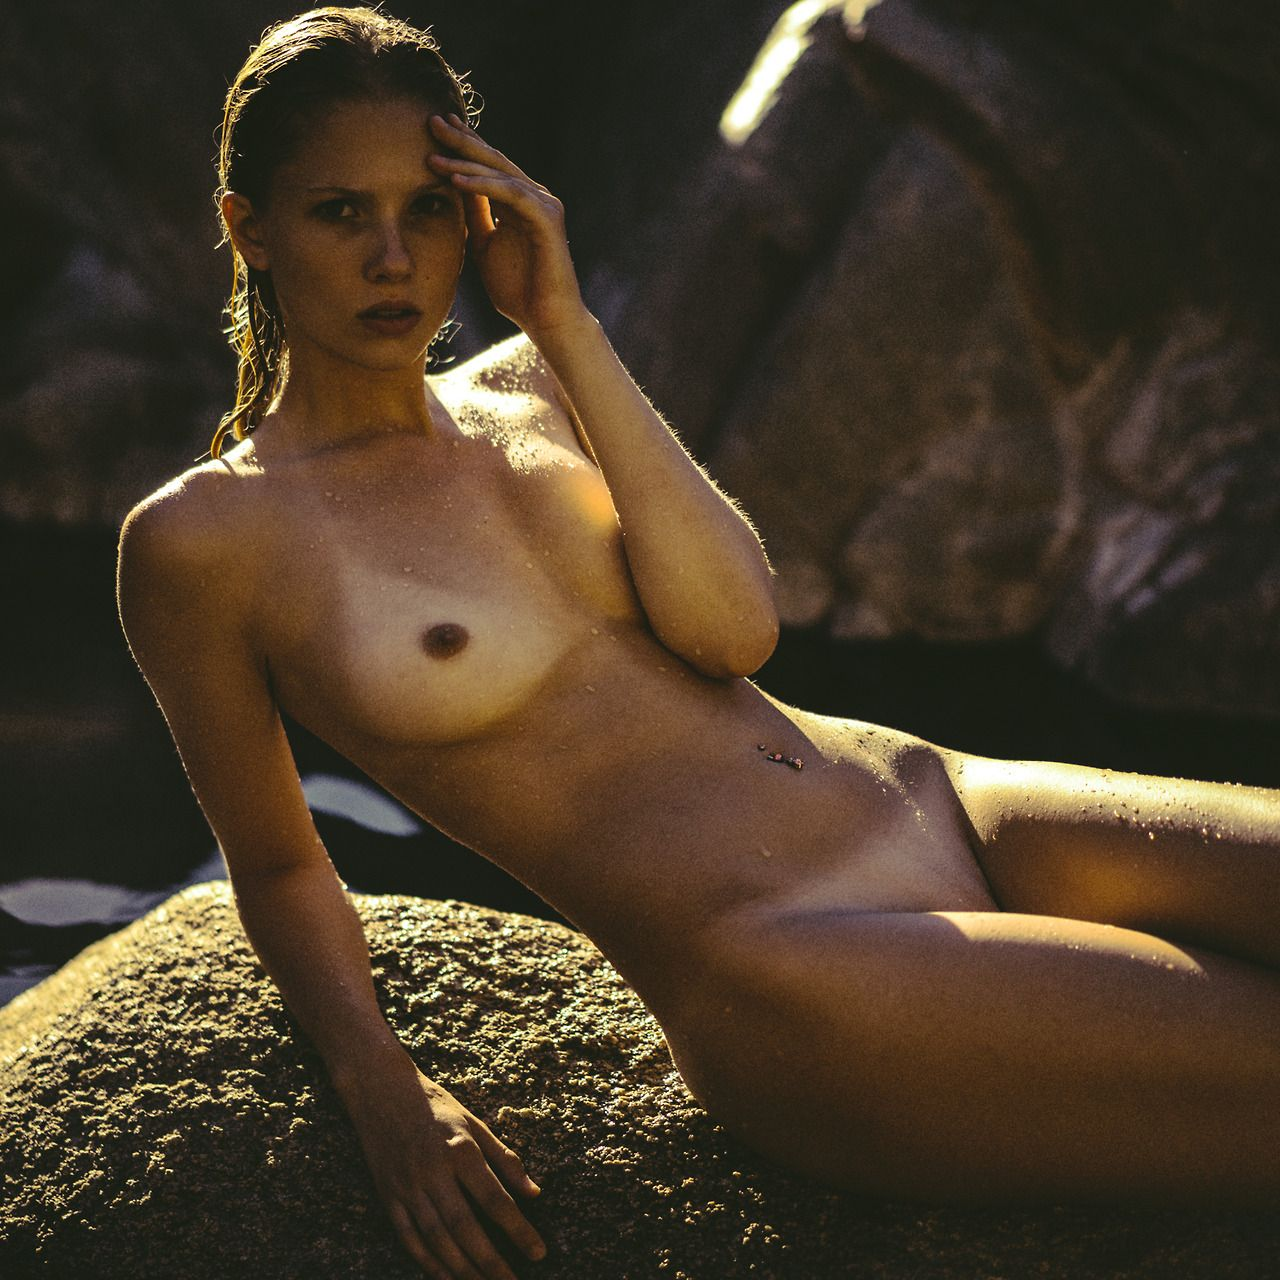 Berit-Birkeland-River-Liana-Yasmina-Jones-Nude-7